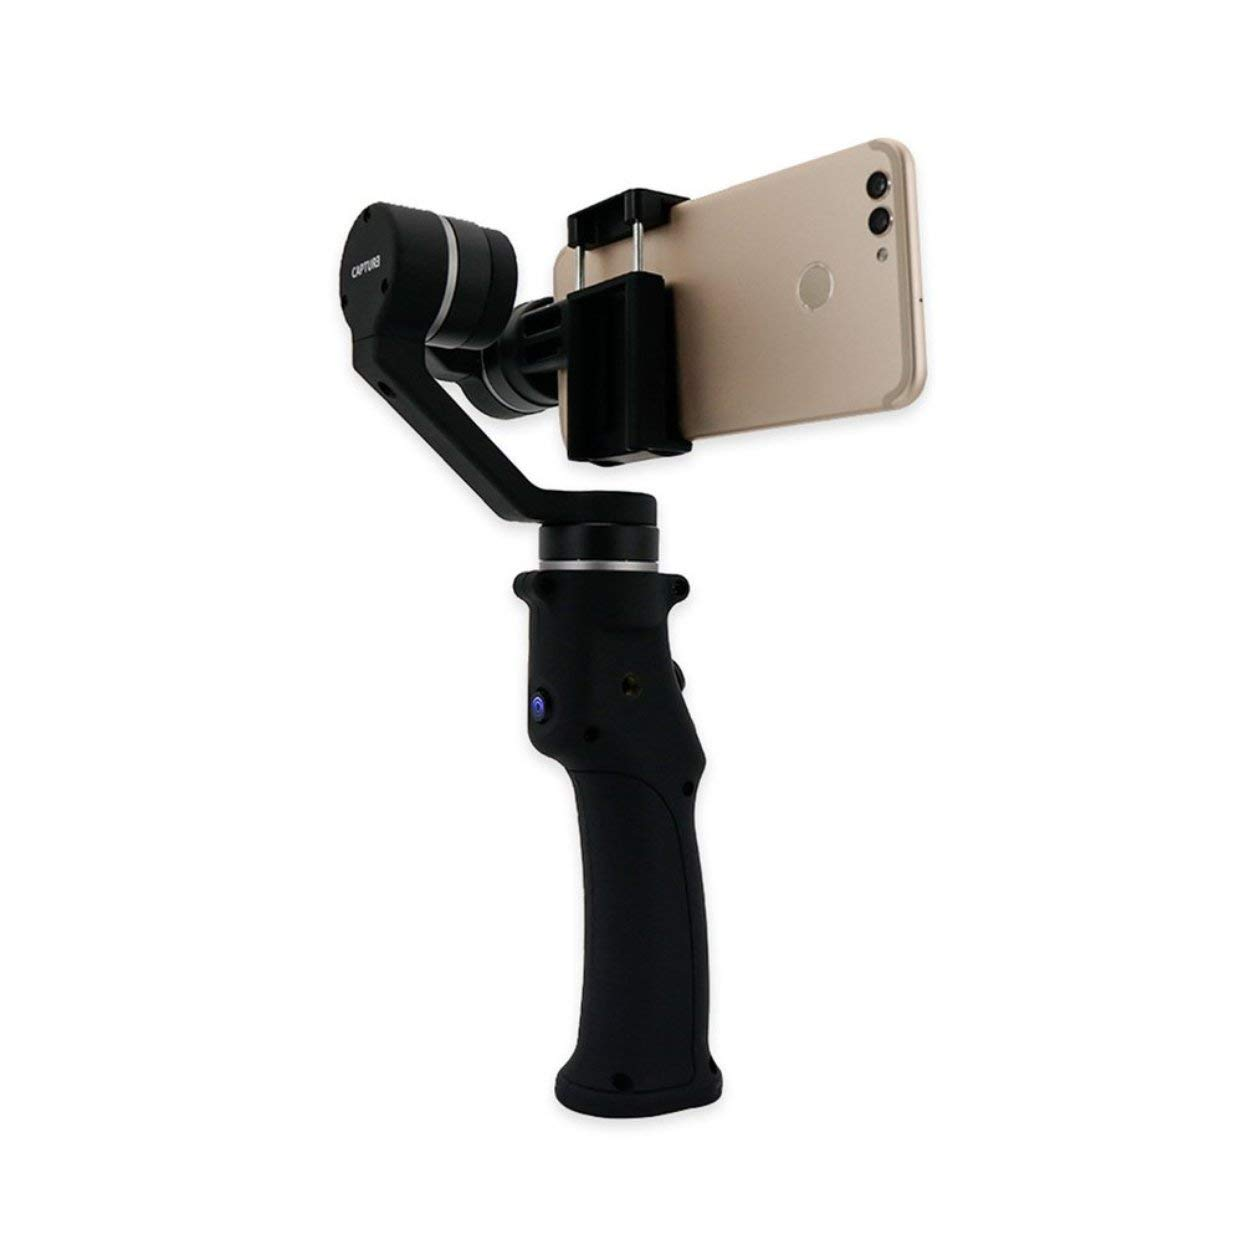 Eyemind 3-Axis Gimbal Handheld Stabilizer para Smartphone iPhone Android Dailyinshop